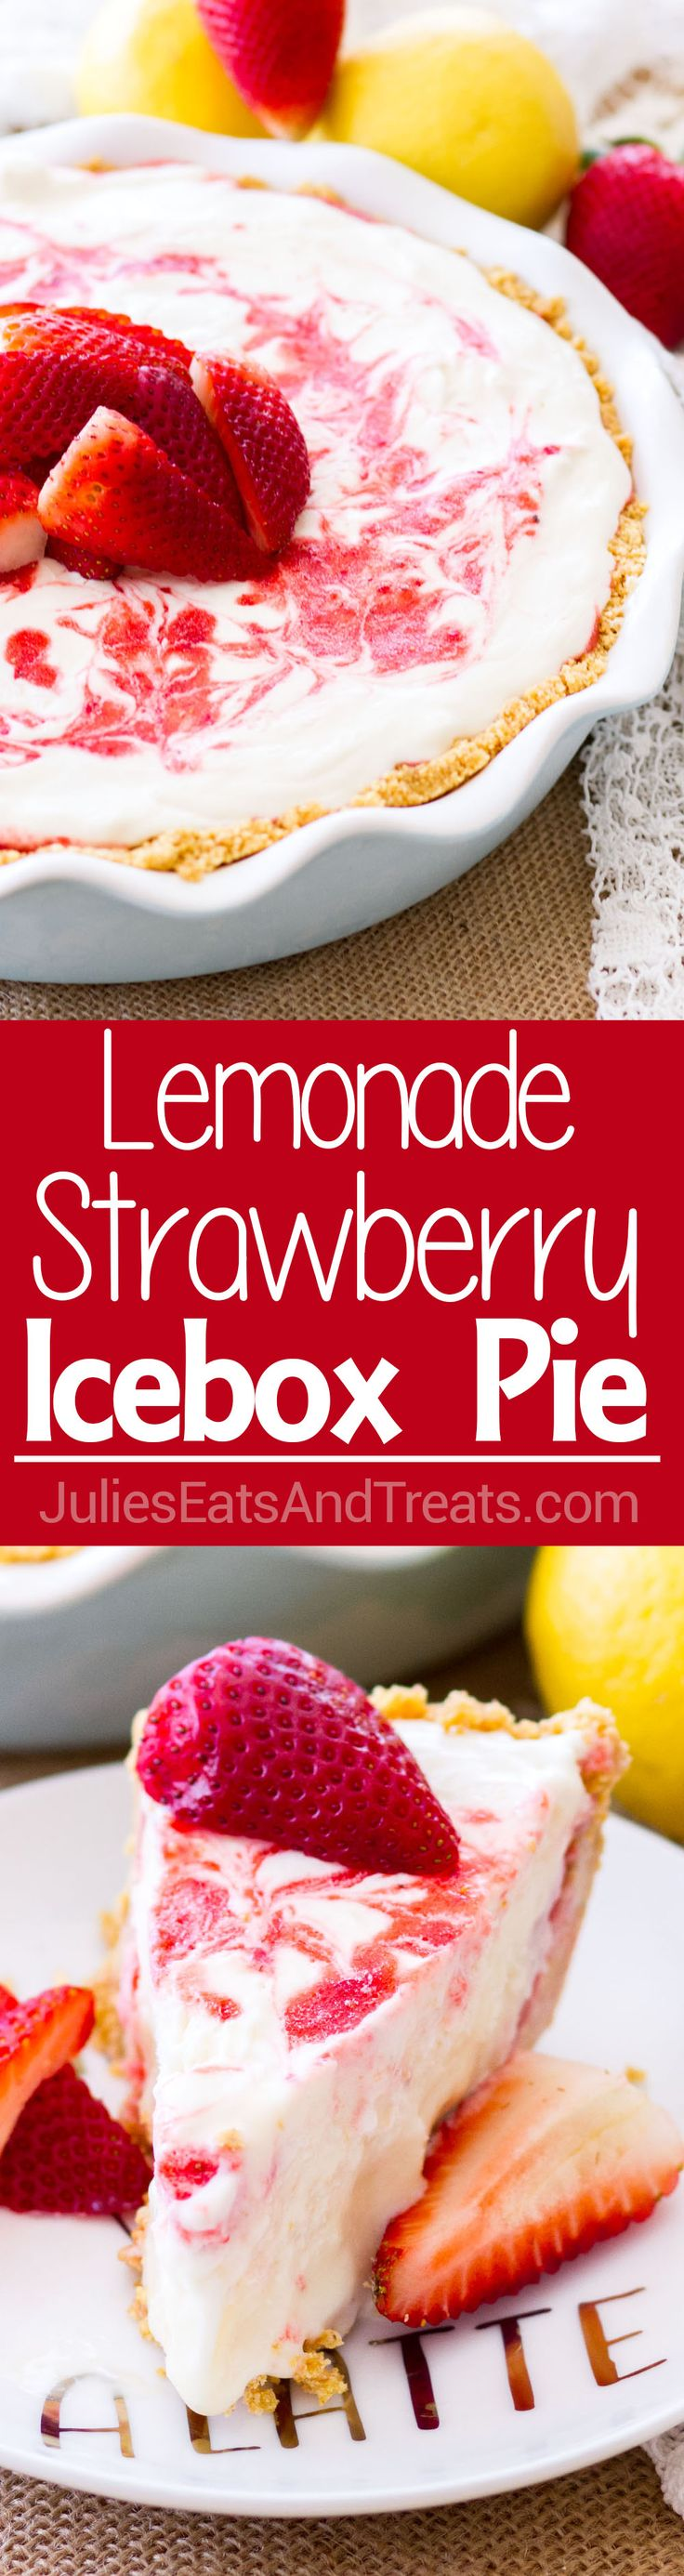 Lemonade Strawberry Icebox Pie ~ This no-bake Lemonade Strawberry Icebox Pie is sweet, a little tangy, and the perfect no-bake dessert for summer! via @julieseats